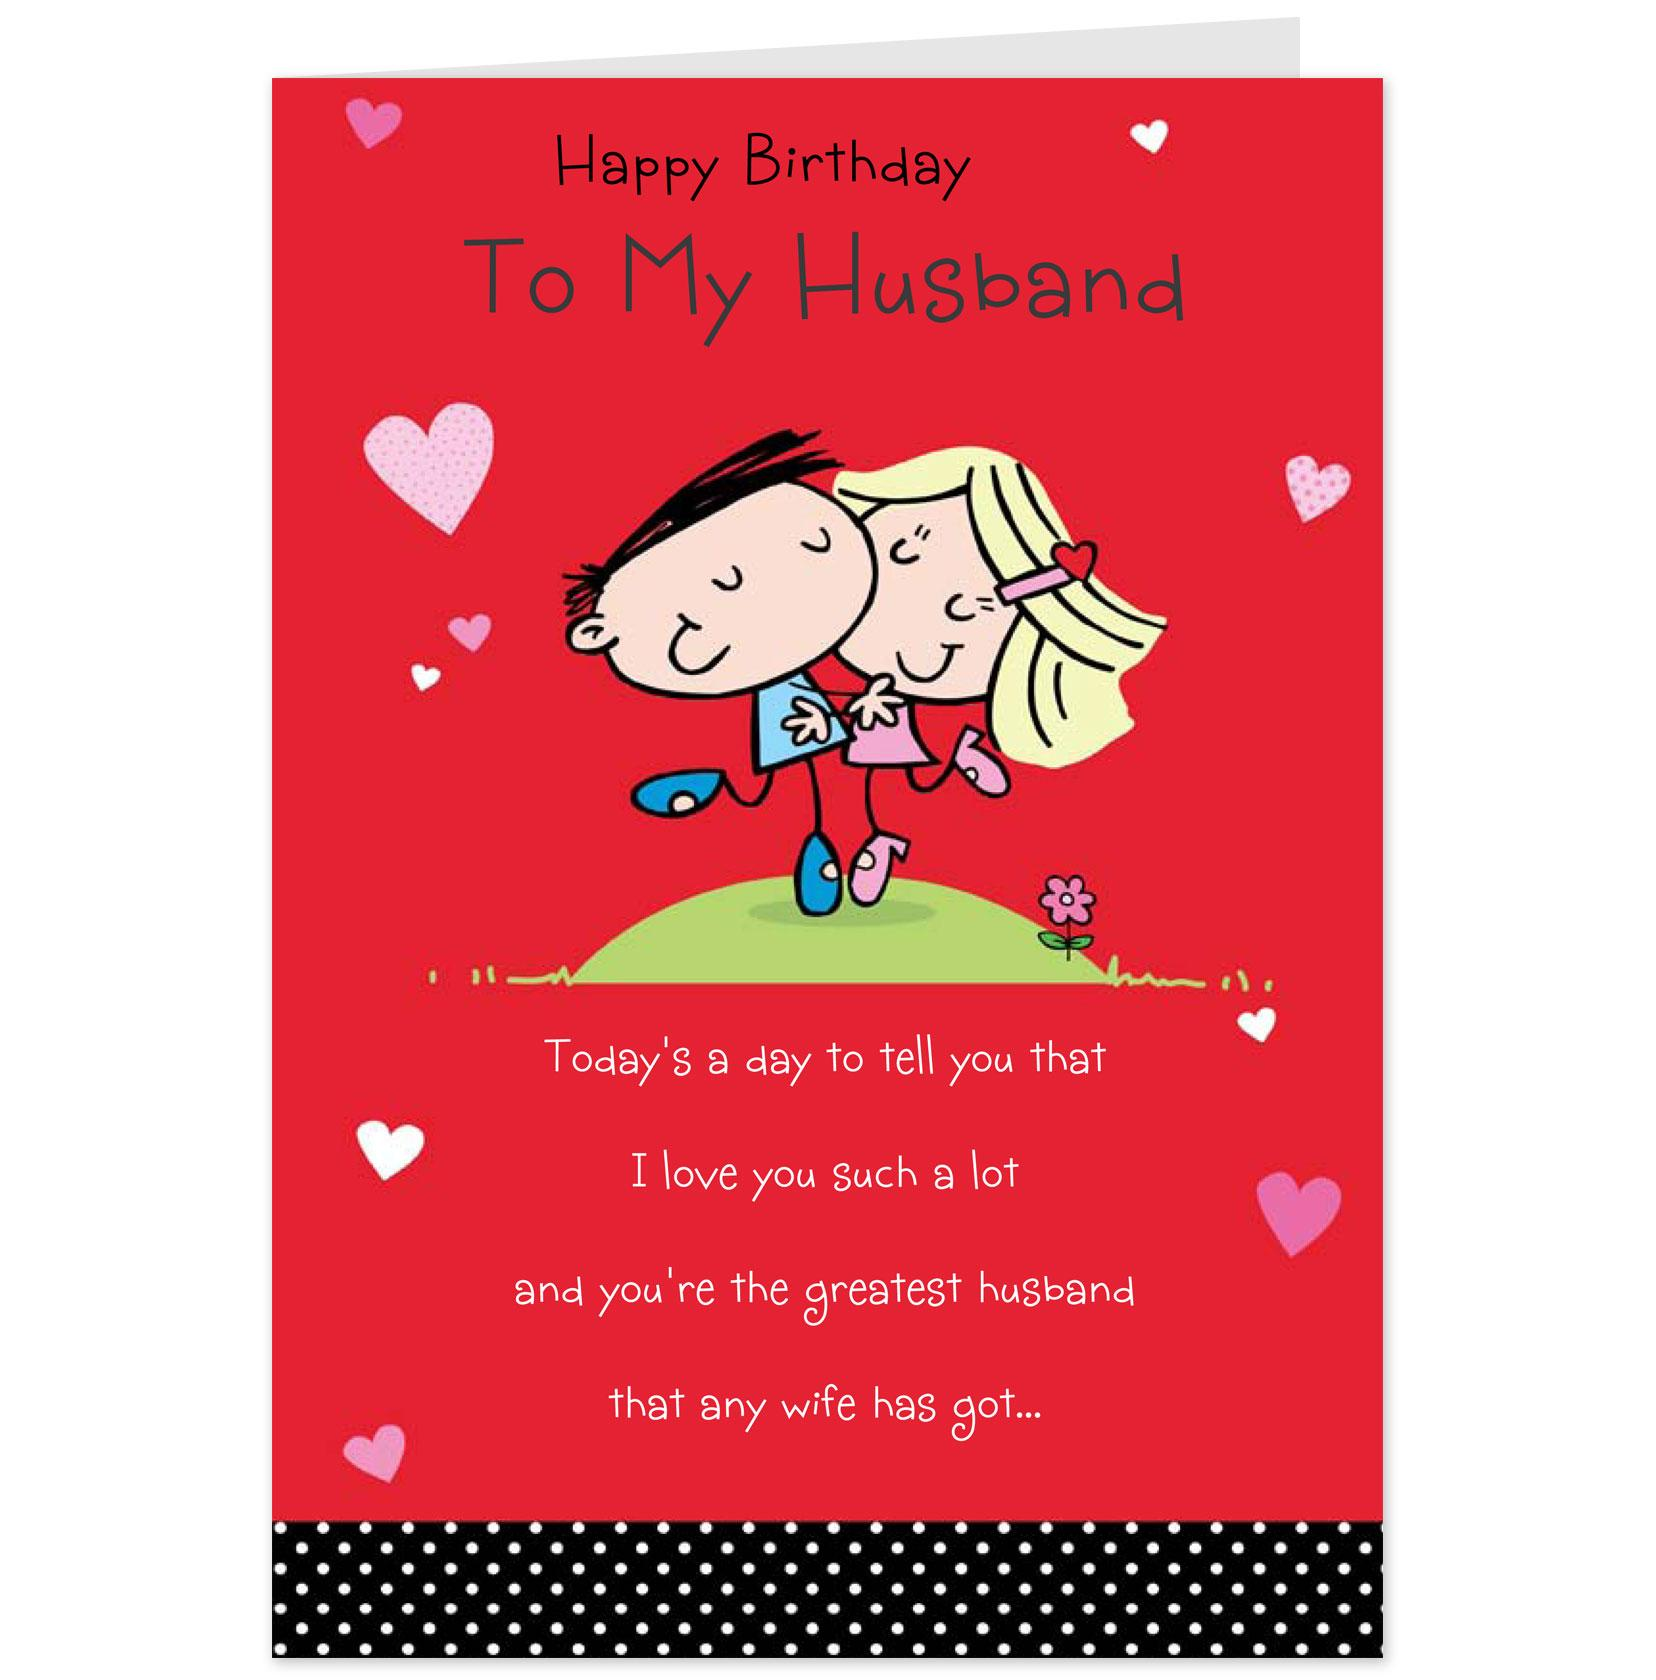 125 Happy Birthday Wishes For Husband: Birthday Greetings For Husband Quotes. QuotesGram